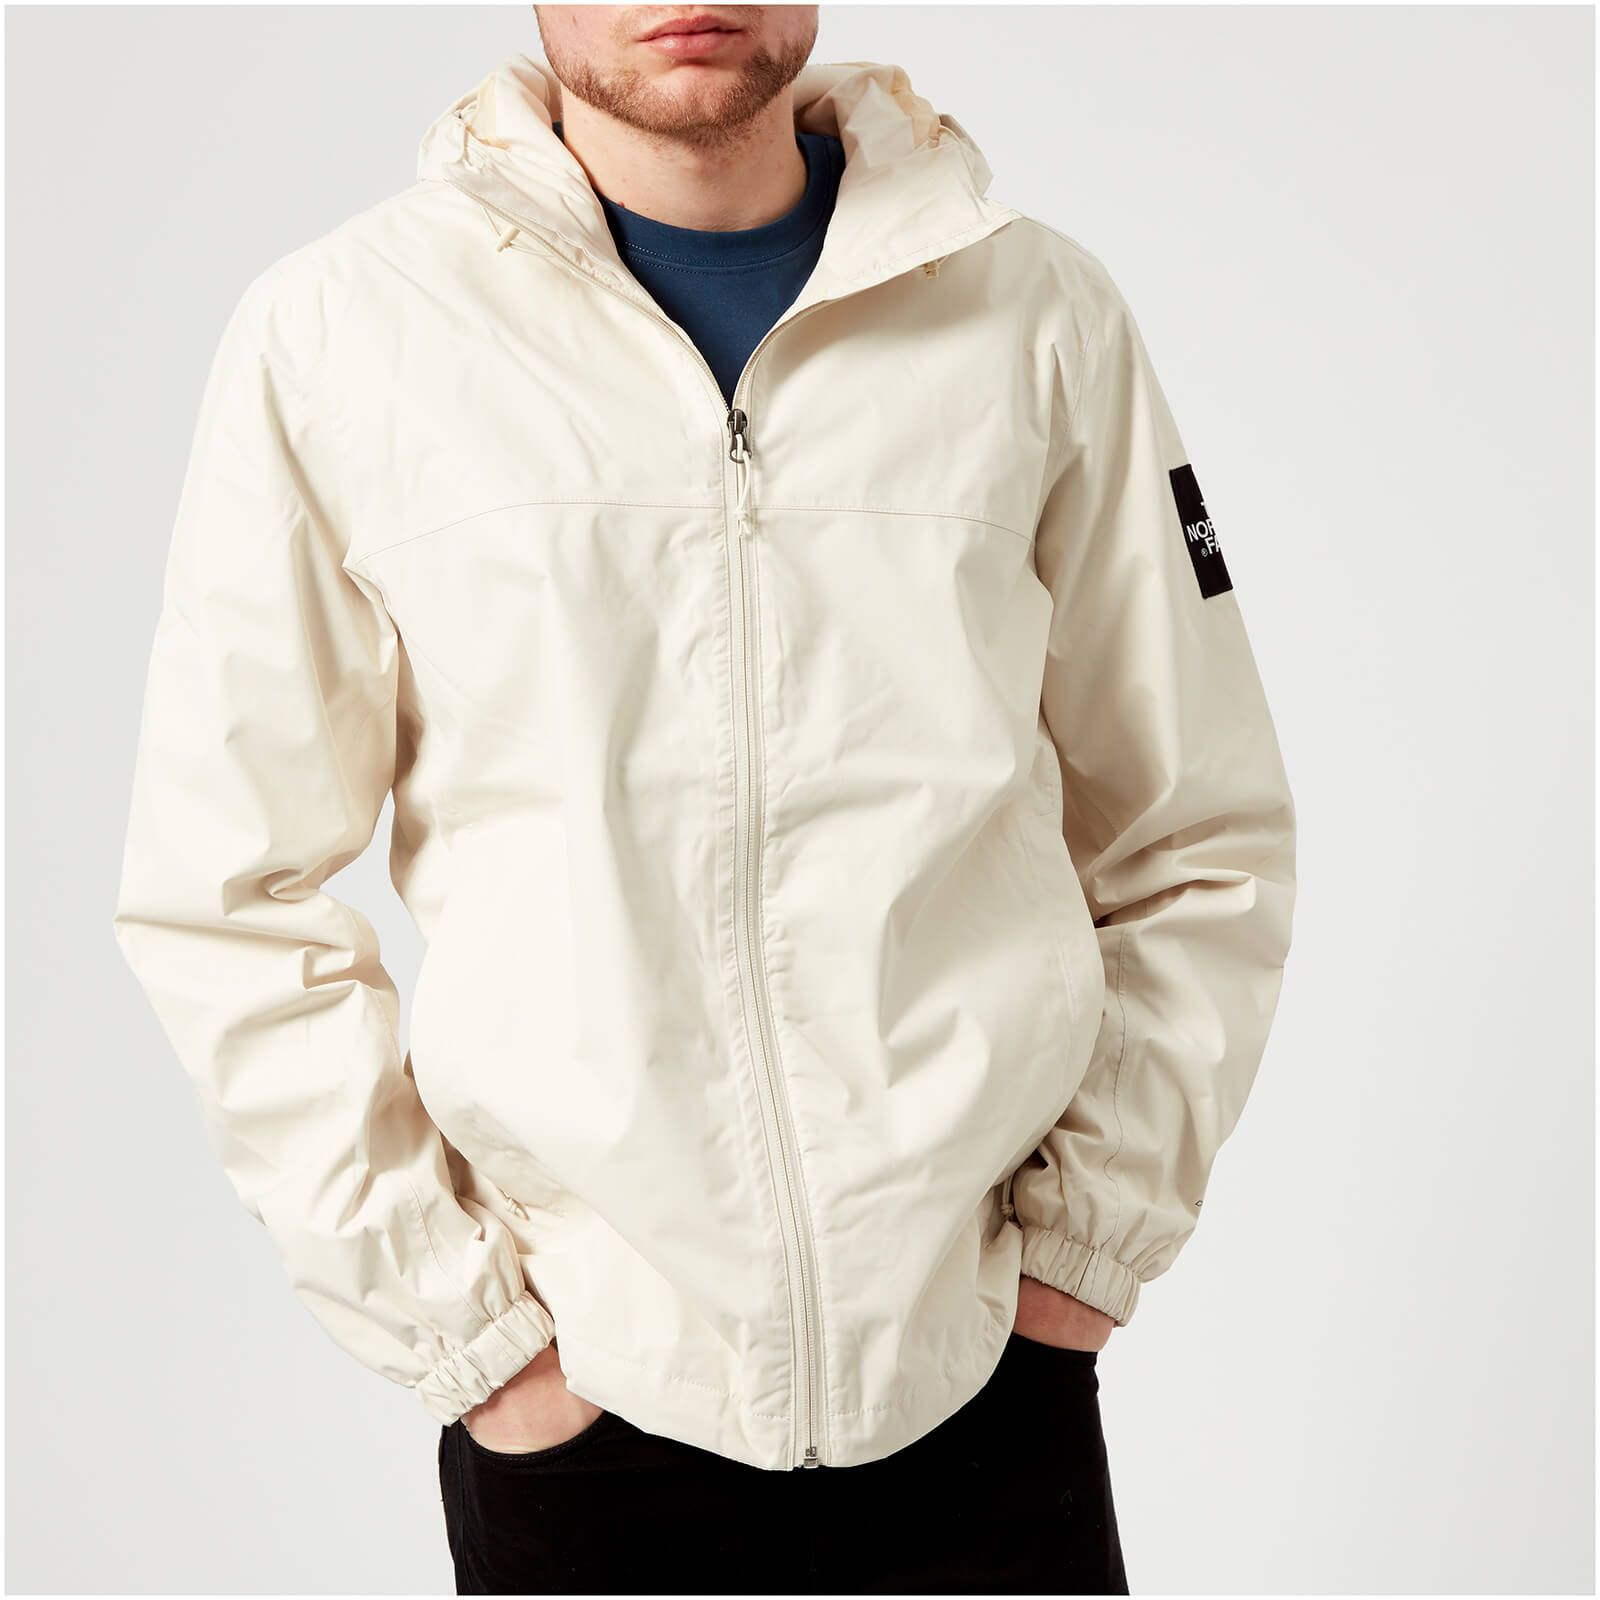 The North Face Men North Face Mens Jackets Casual Jacket [ 1600 x 1600 Pixel ]